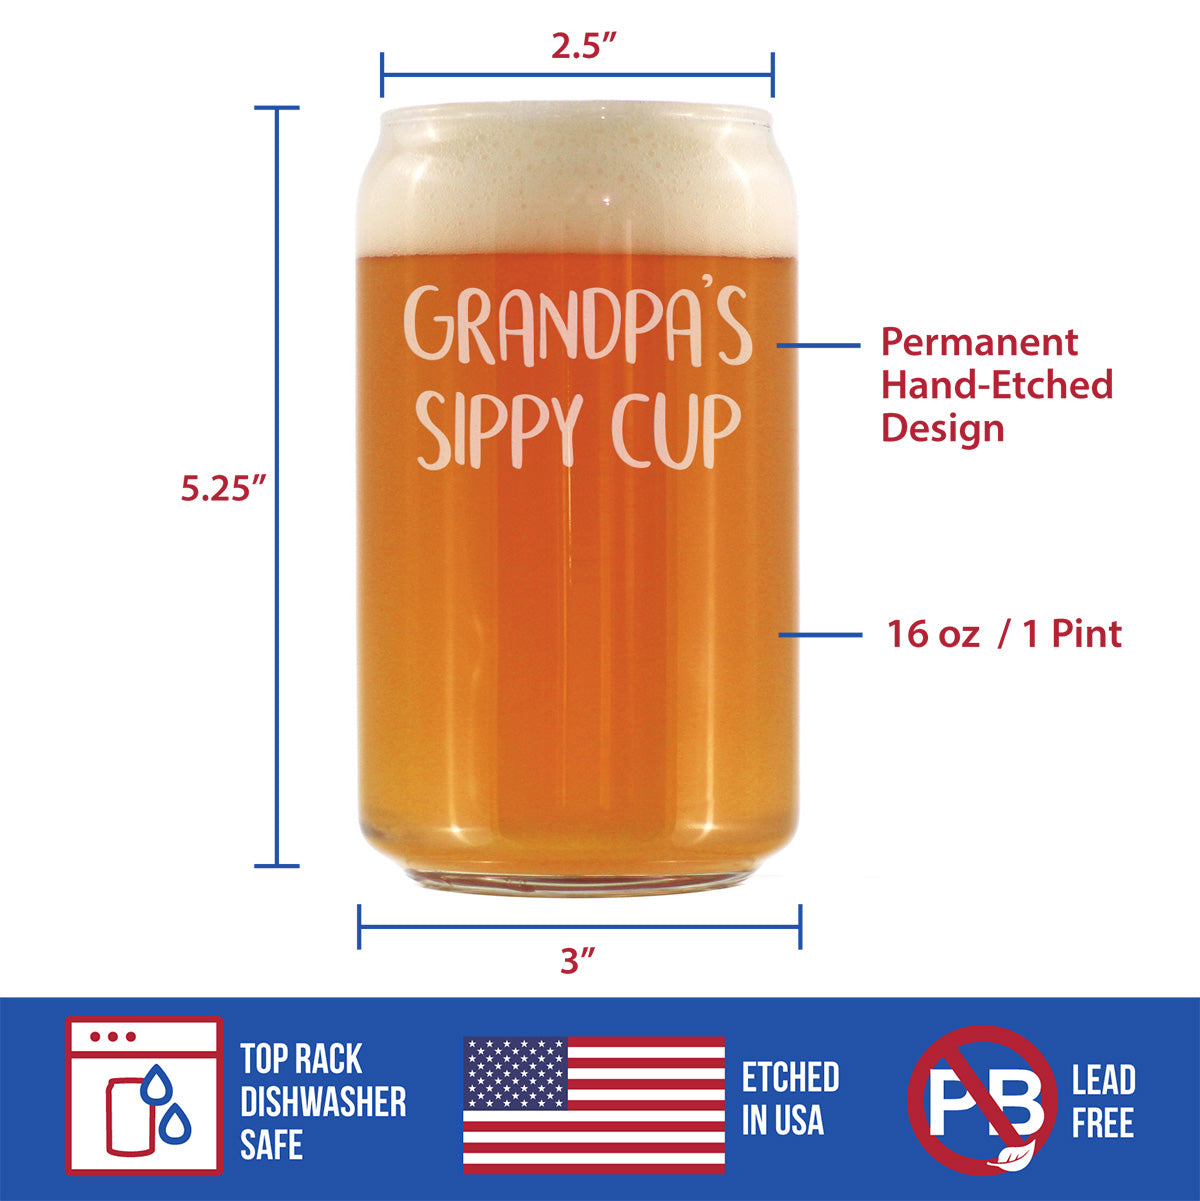 Grandpa's Sippy Cup - 16 Ounce Beer Can Pint Glass